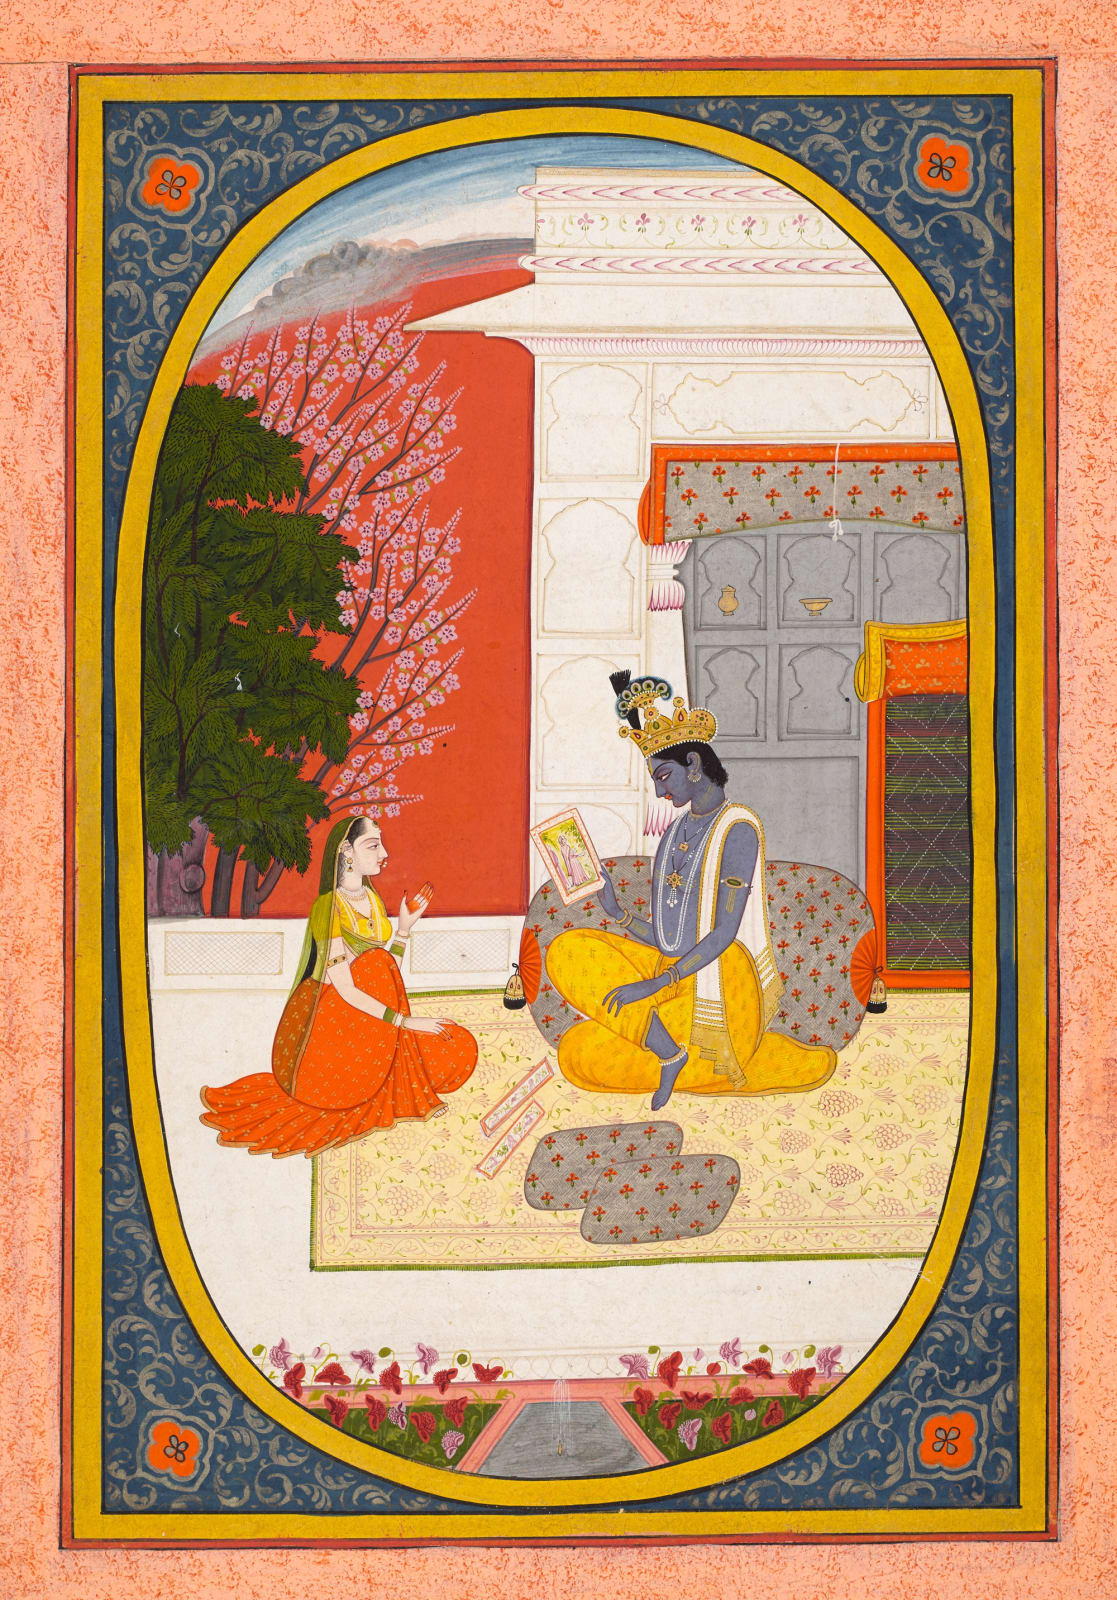 Krishna examines a Picture of his beloved which the Sakhi has brought him - Page from the Rasikapriya of Keshav Das, Attributed to Purkhu, Kangra, c. 1810-20